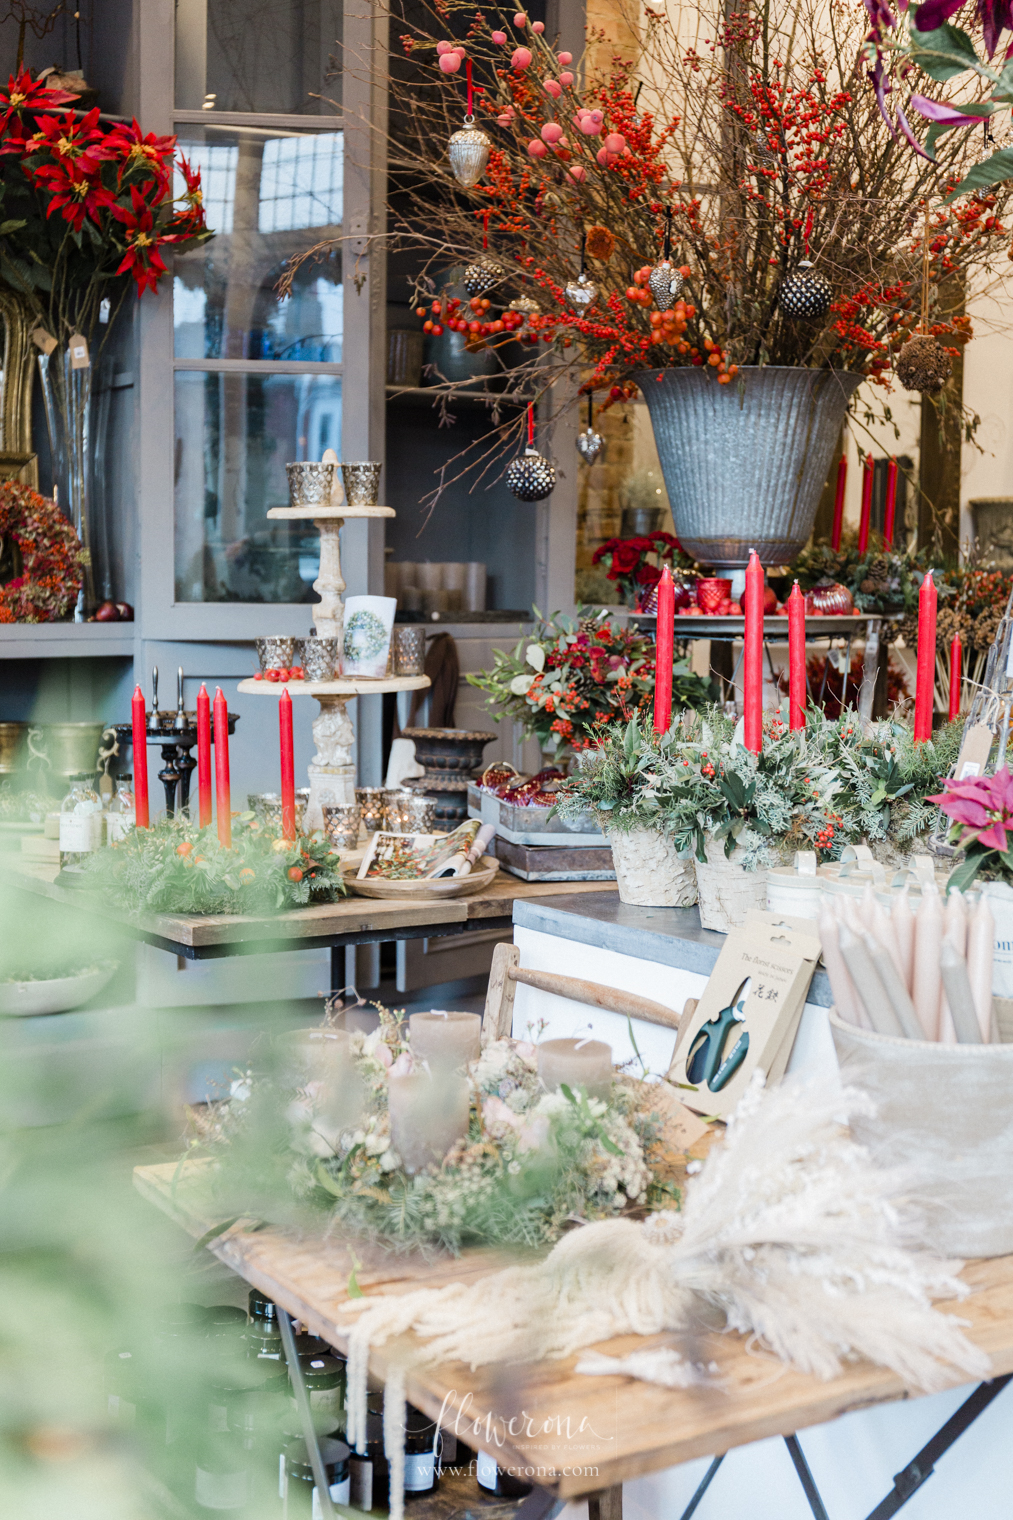 Zita Elze Flower Shop Christmas 2019